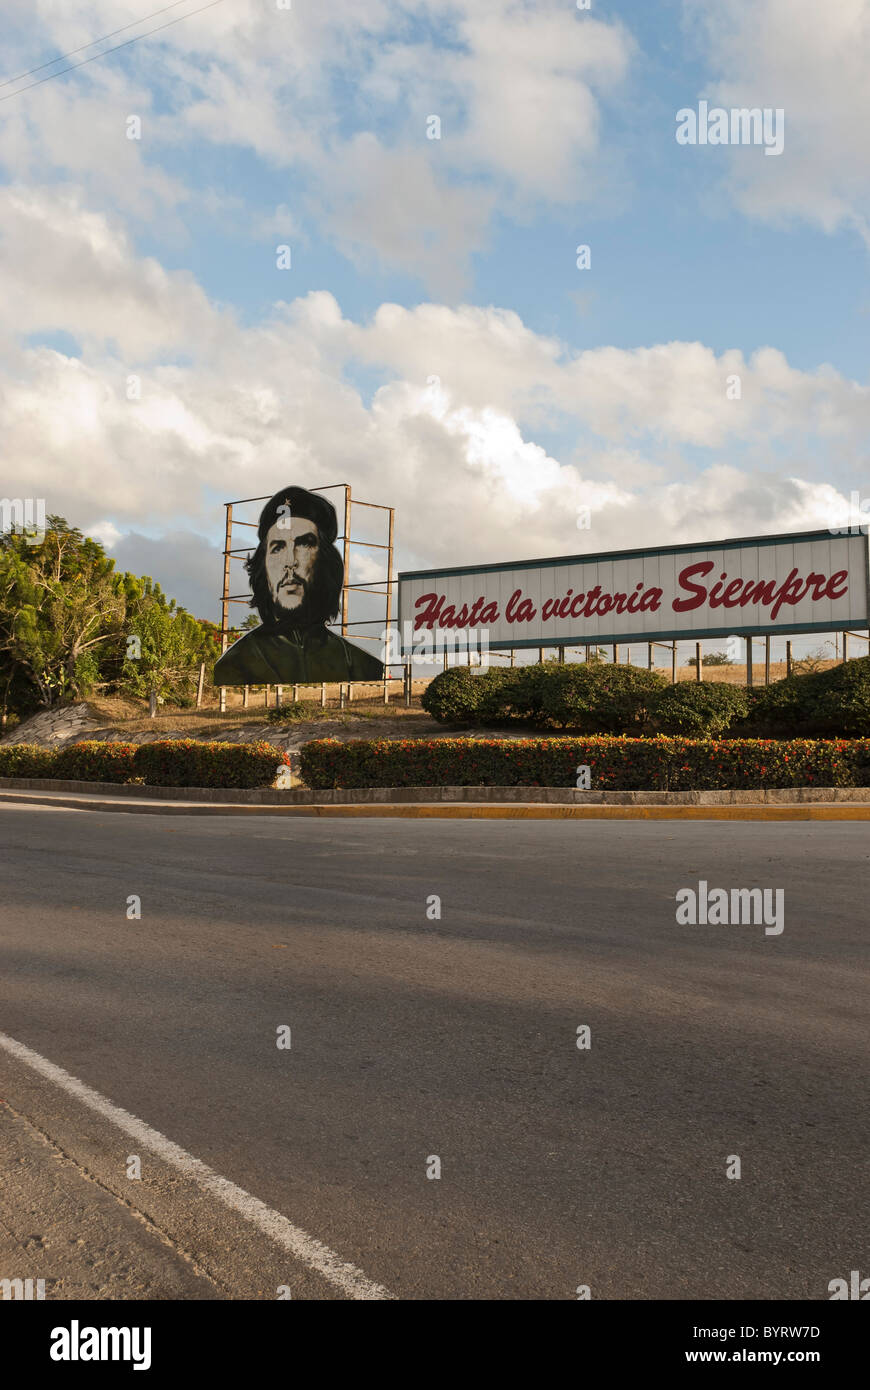 Che propaganda bill on a road near Las Tunas. Las Tunas, Cuba, Caribbean. - Stock Image